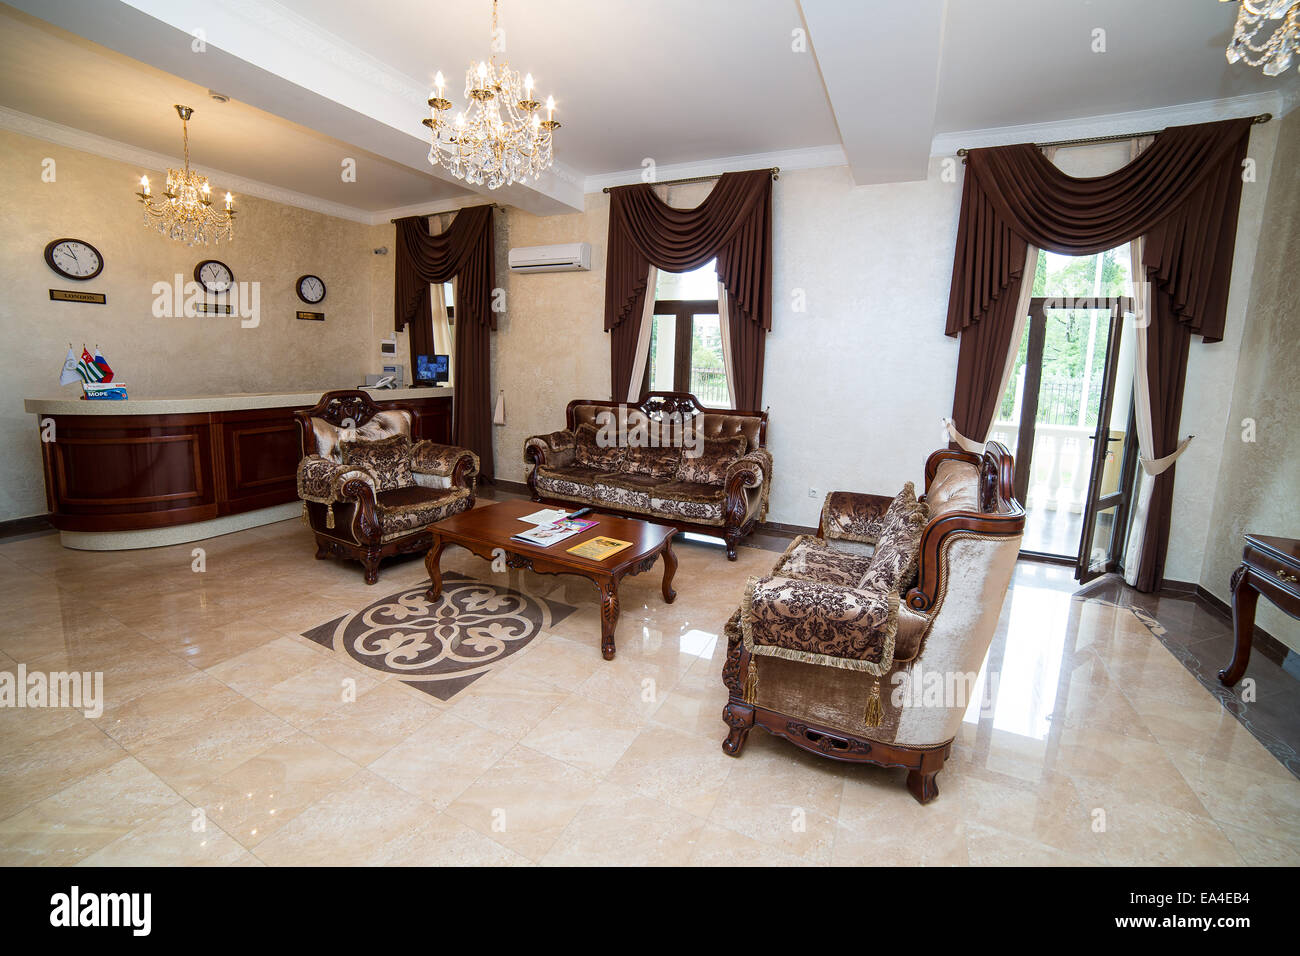 modern hotel reception hall interior design stock photo, royalty